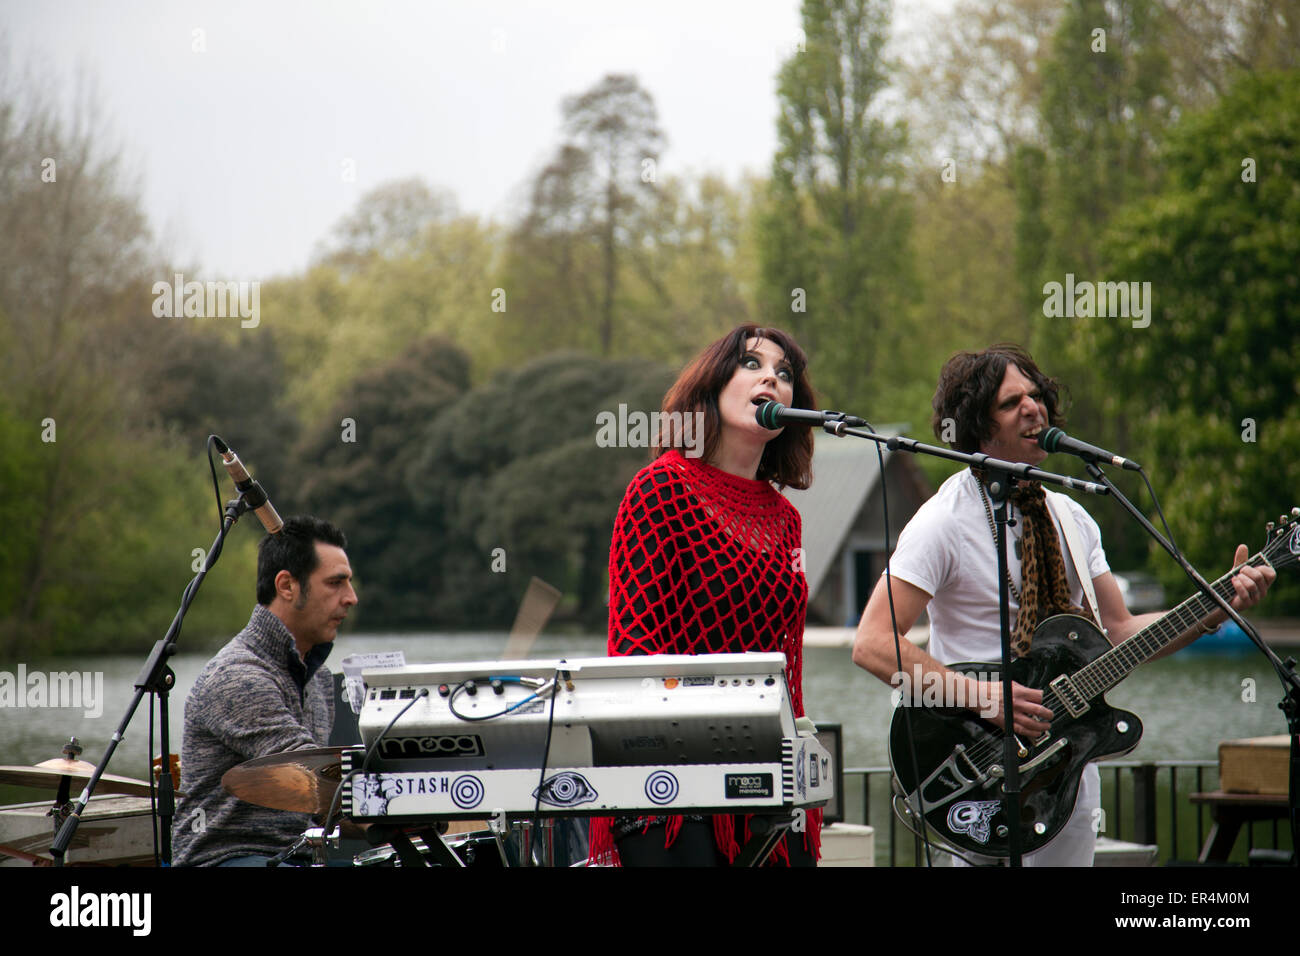 Band, 'Stash', performing Live at Battersea Park in Cafe - London UK - Stock Image